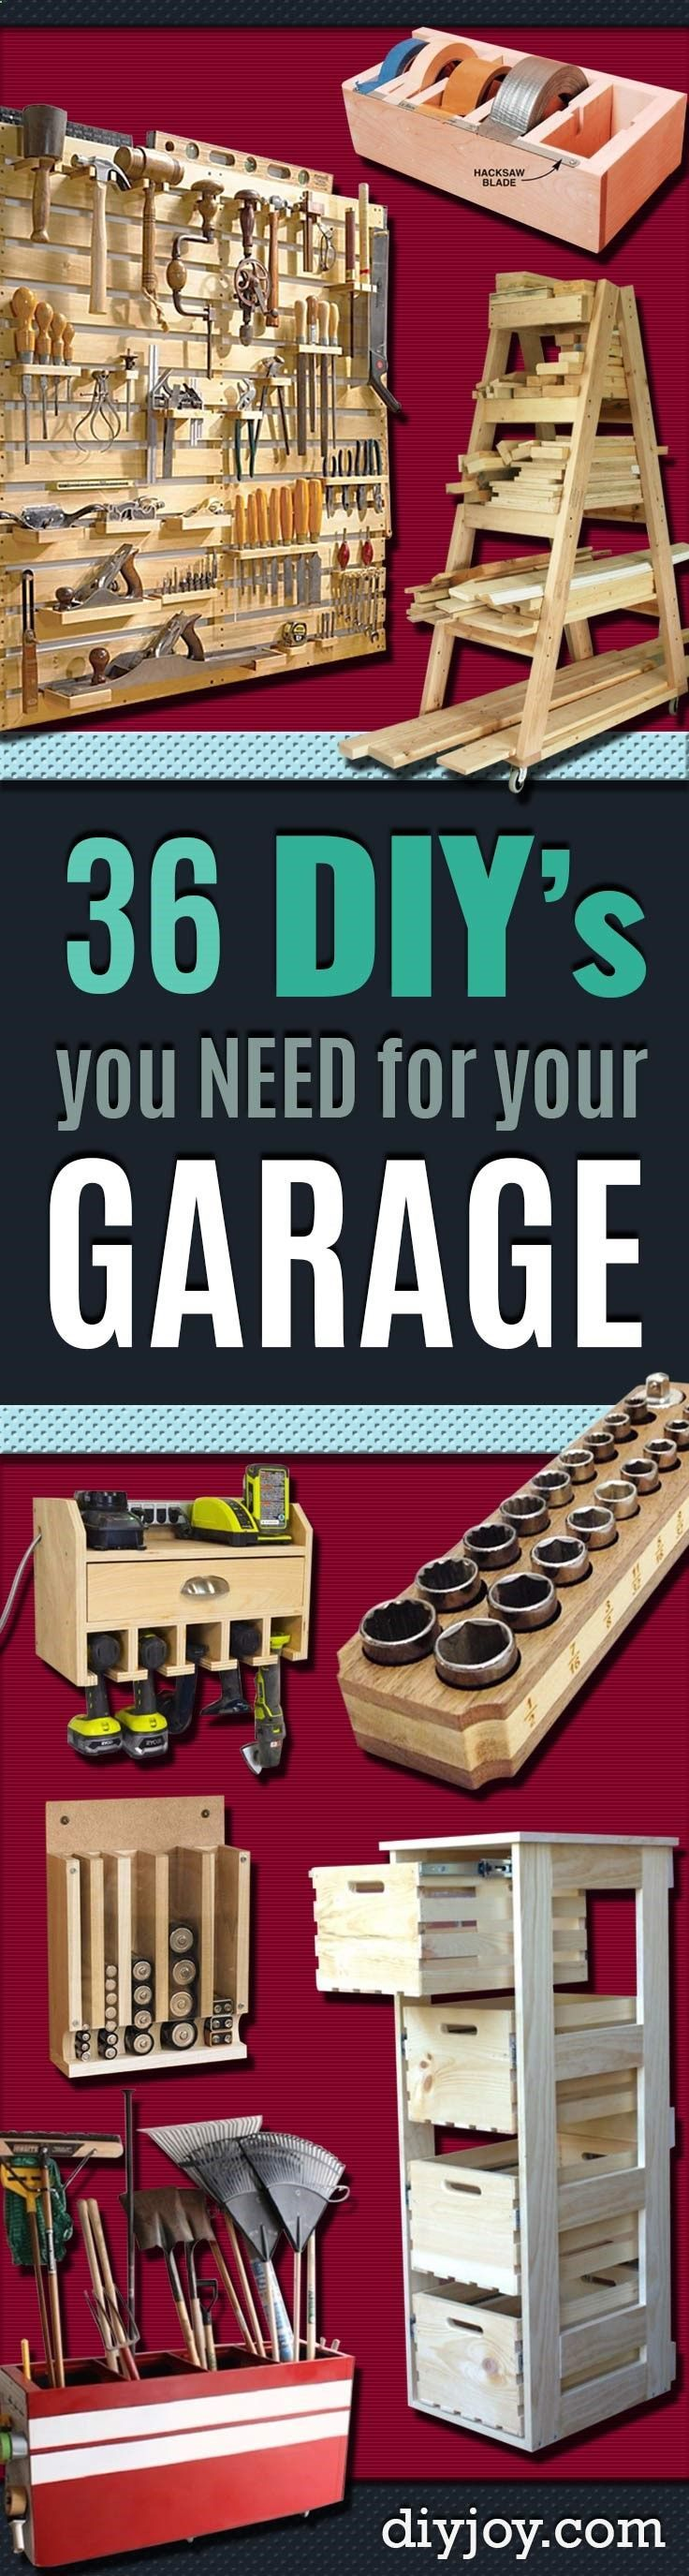 Diy projects your garage needs do it yourself garage makeover ideas diy projects your garage needs do it yourself garage makeover ideas include storage organization shelves and project plans for cool new garage solutioingenieria Images